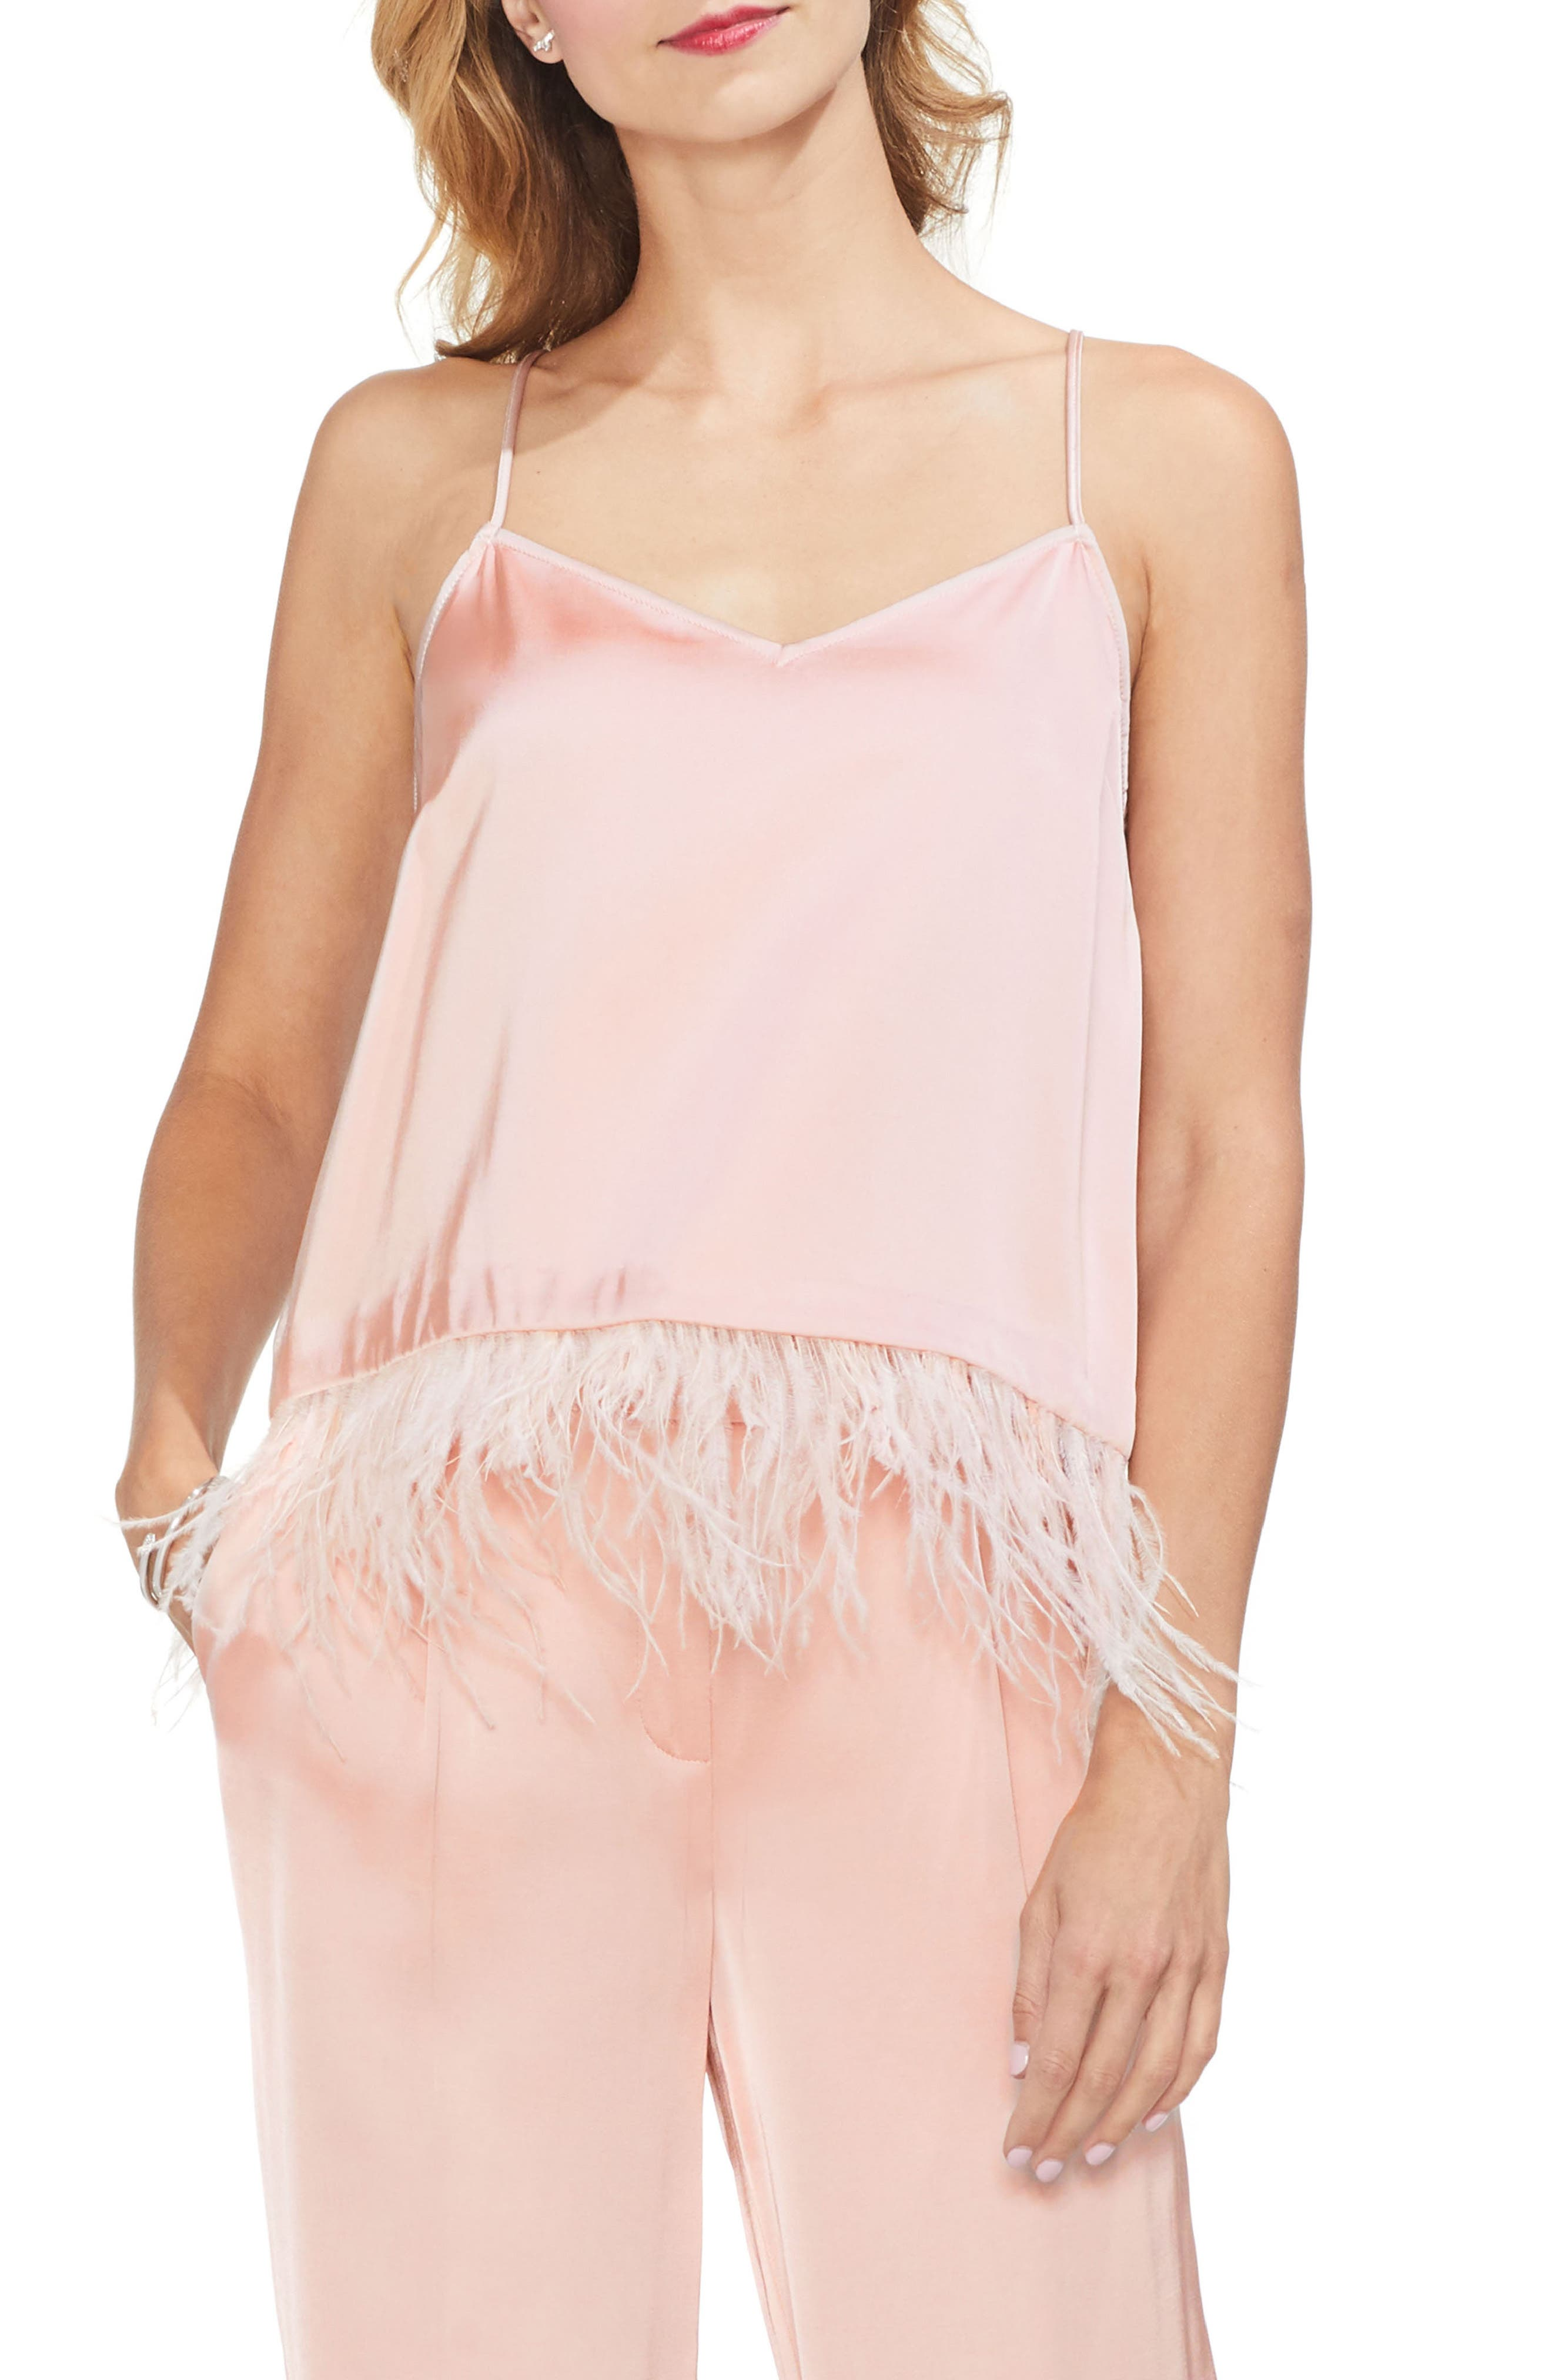 Soft Satin Feather Detail Chiffon Camisole in Rose Buff